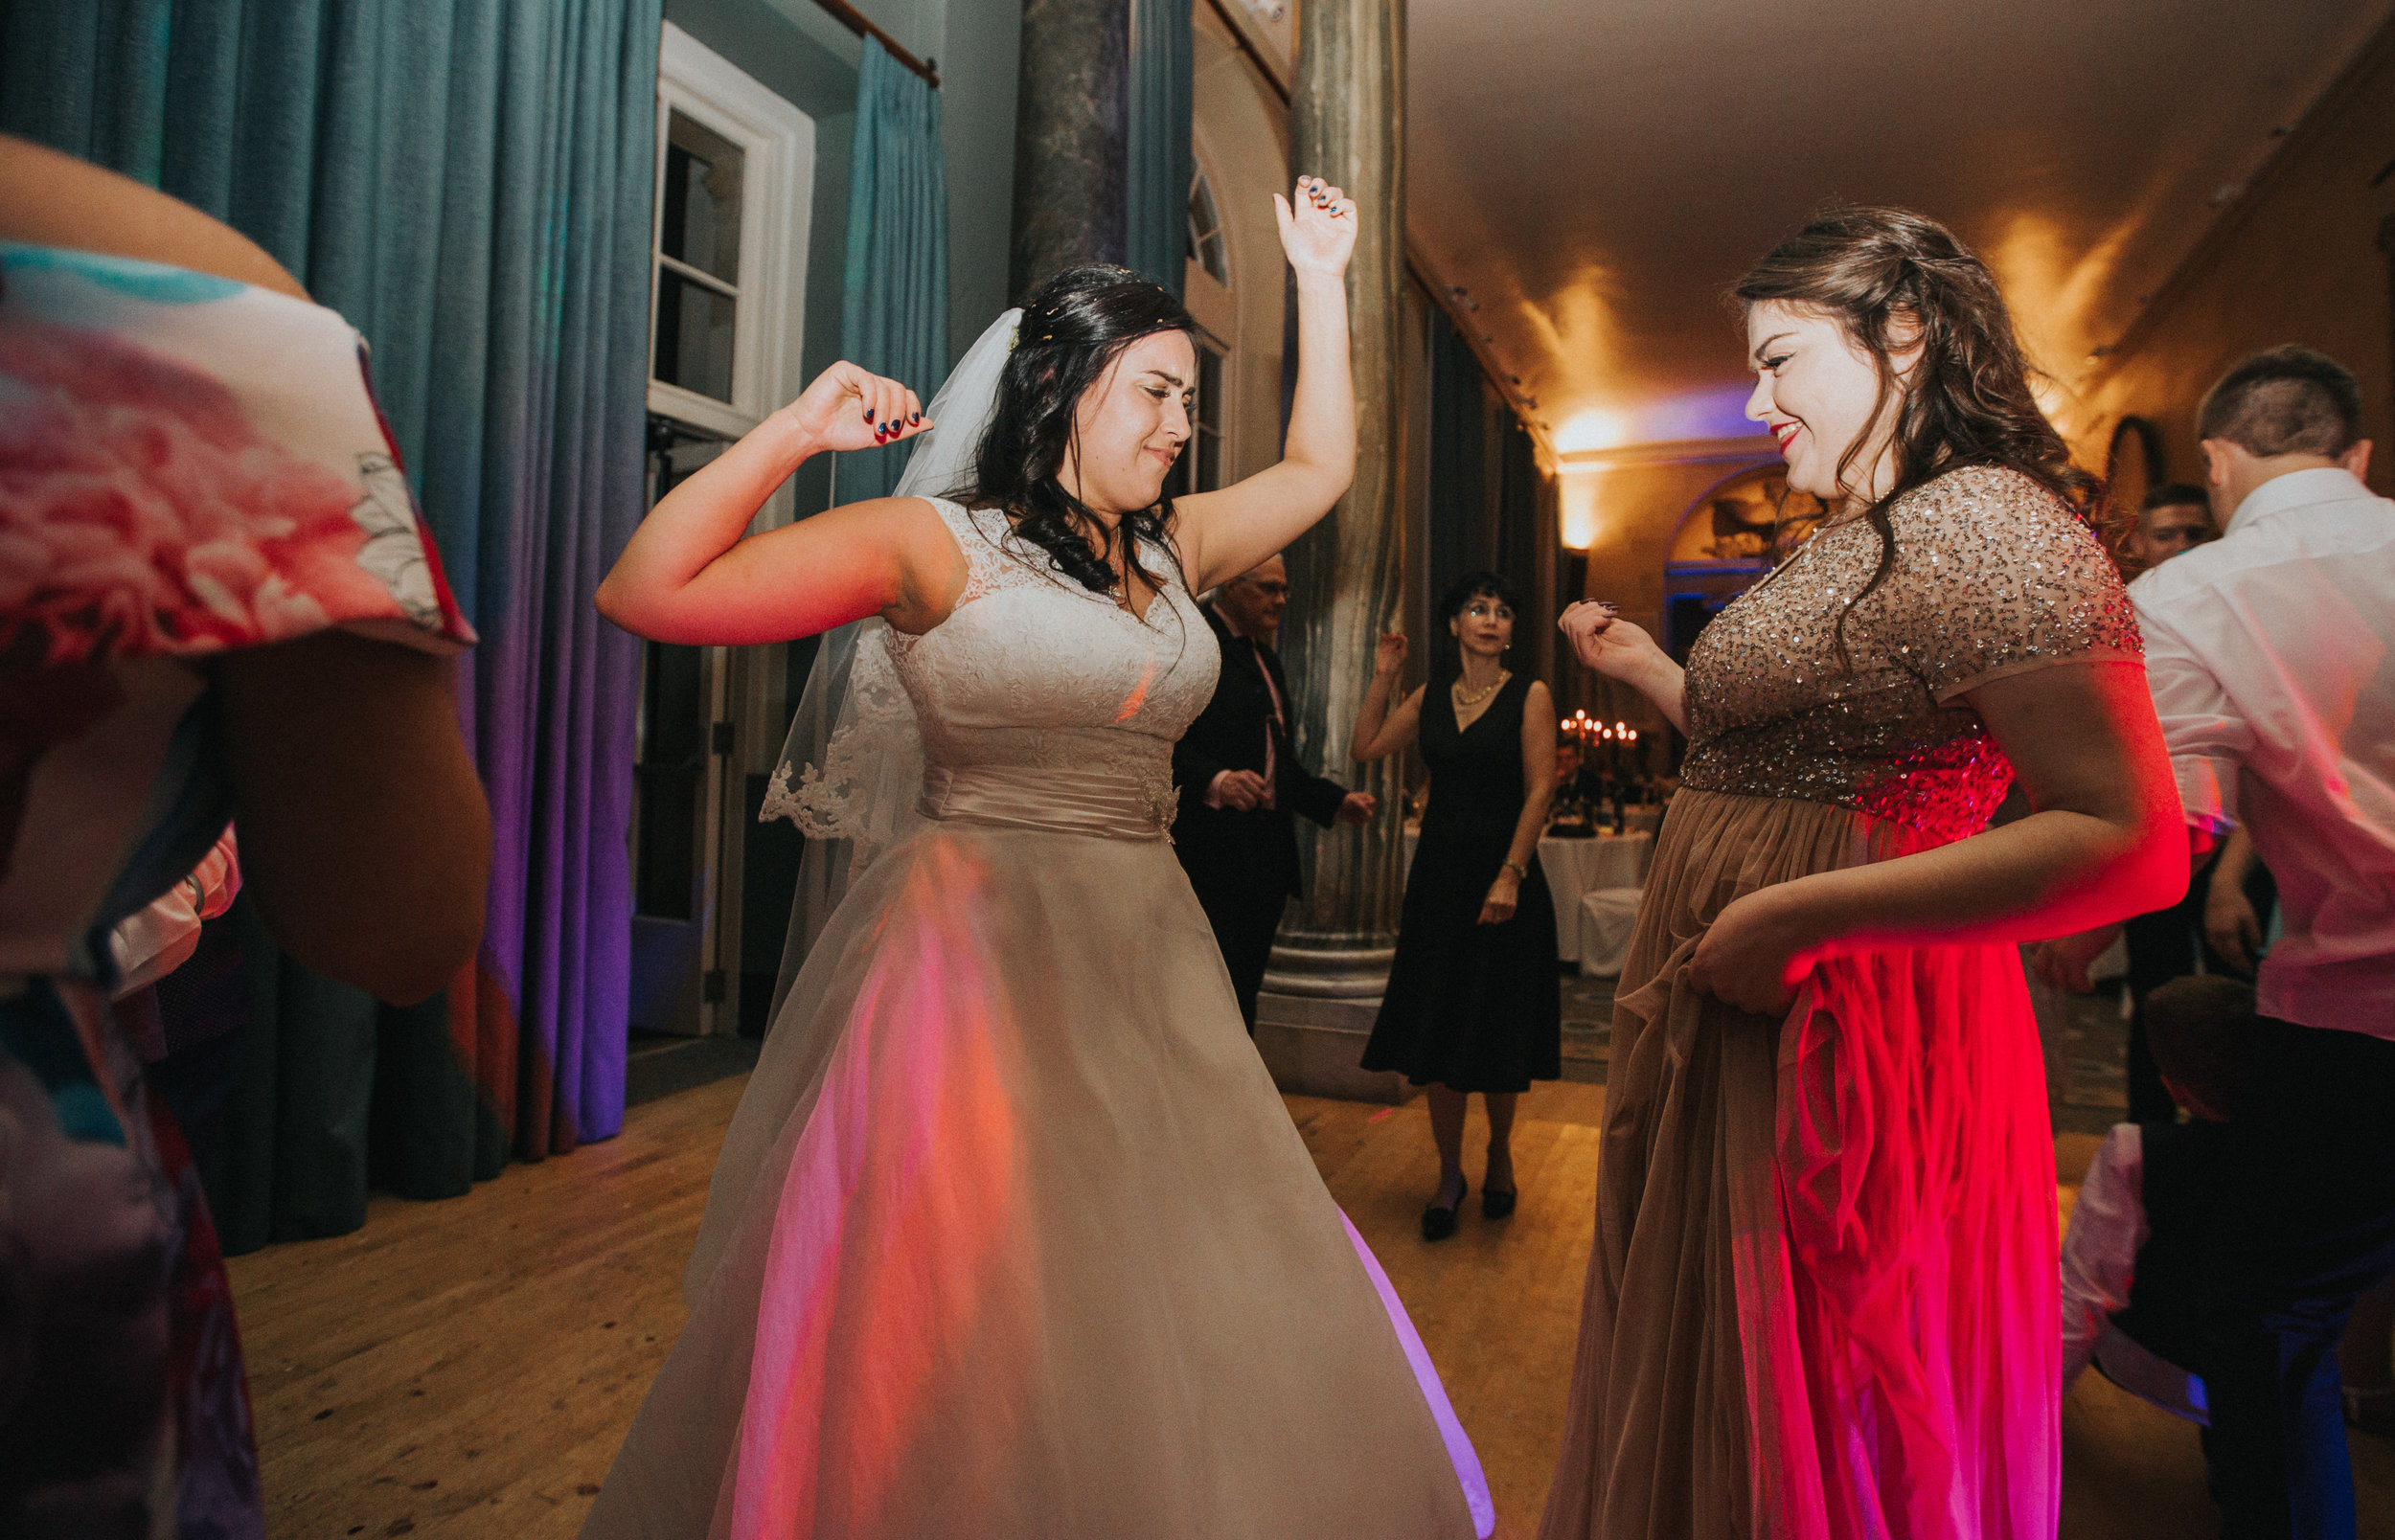 london-bedfordshire-uk-wedding-photography-woburn-sculpture-gallery-dancing-party-91